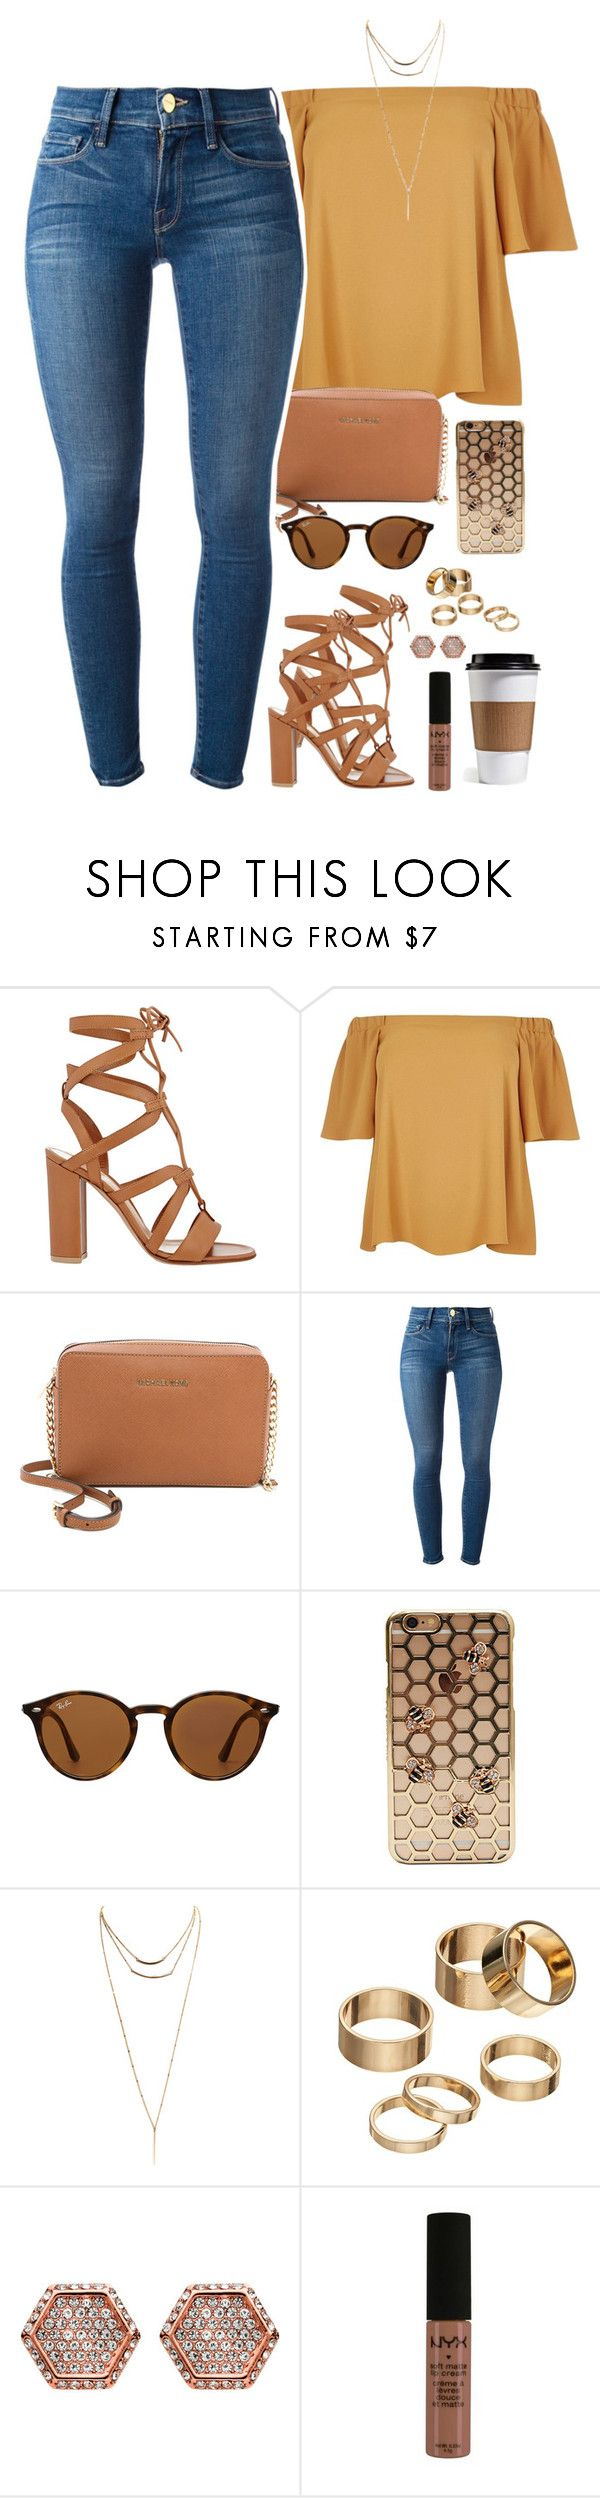 """already done with school"" by daisym0nste ❤ liked on Polyvore featuring Gianvito Rossi, River Island, MICHAEL Michael Kors, Frame, Ray-Ban, Wet Seal, Apt. 9, Henri Bendel, NYX and plus size clothing"